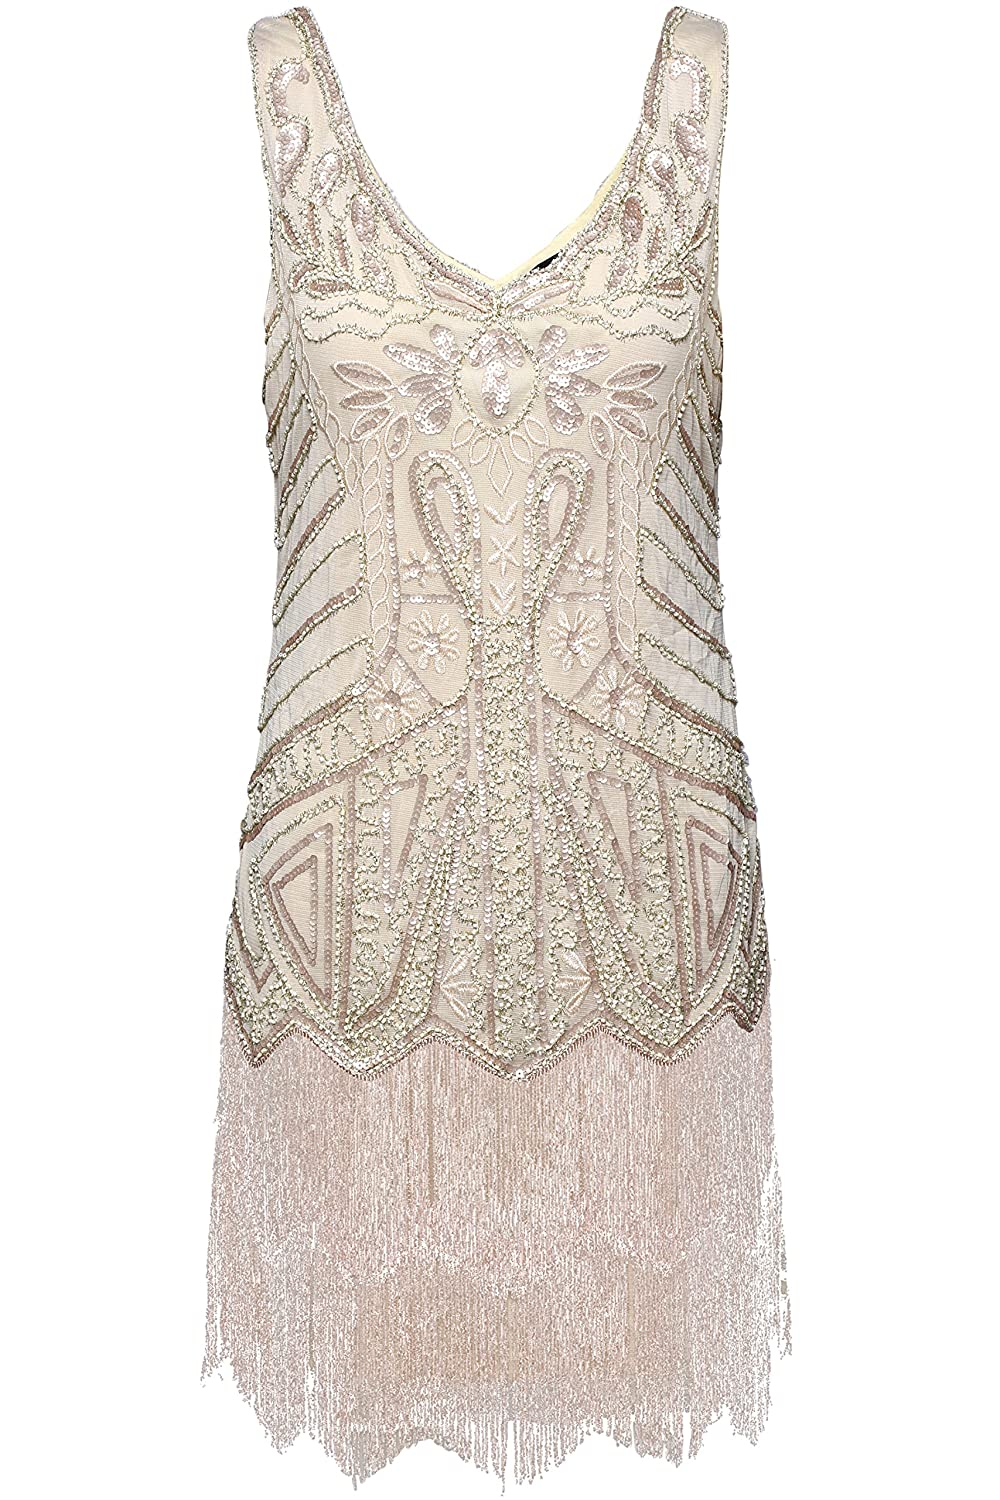 1920s Style Costumes BABEYOND Womens Flapper Dresses 1920s V Neck Beaded Fringed Great Gatsby Dress $28.99 AT vintagedancer.com